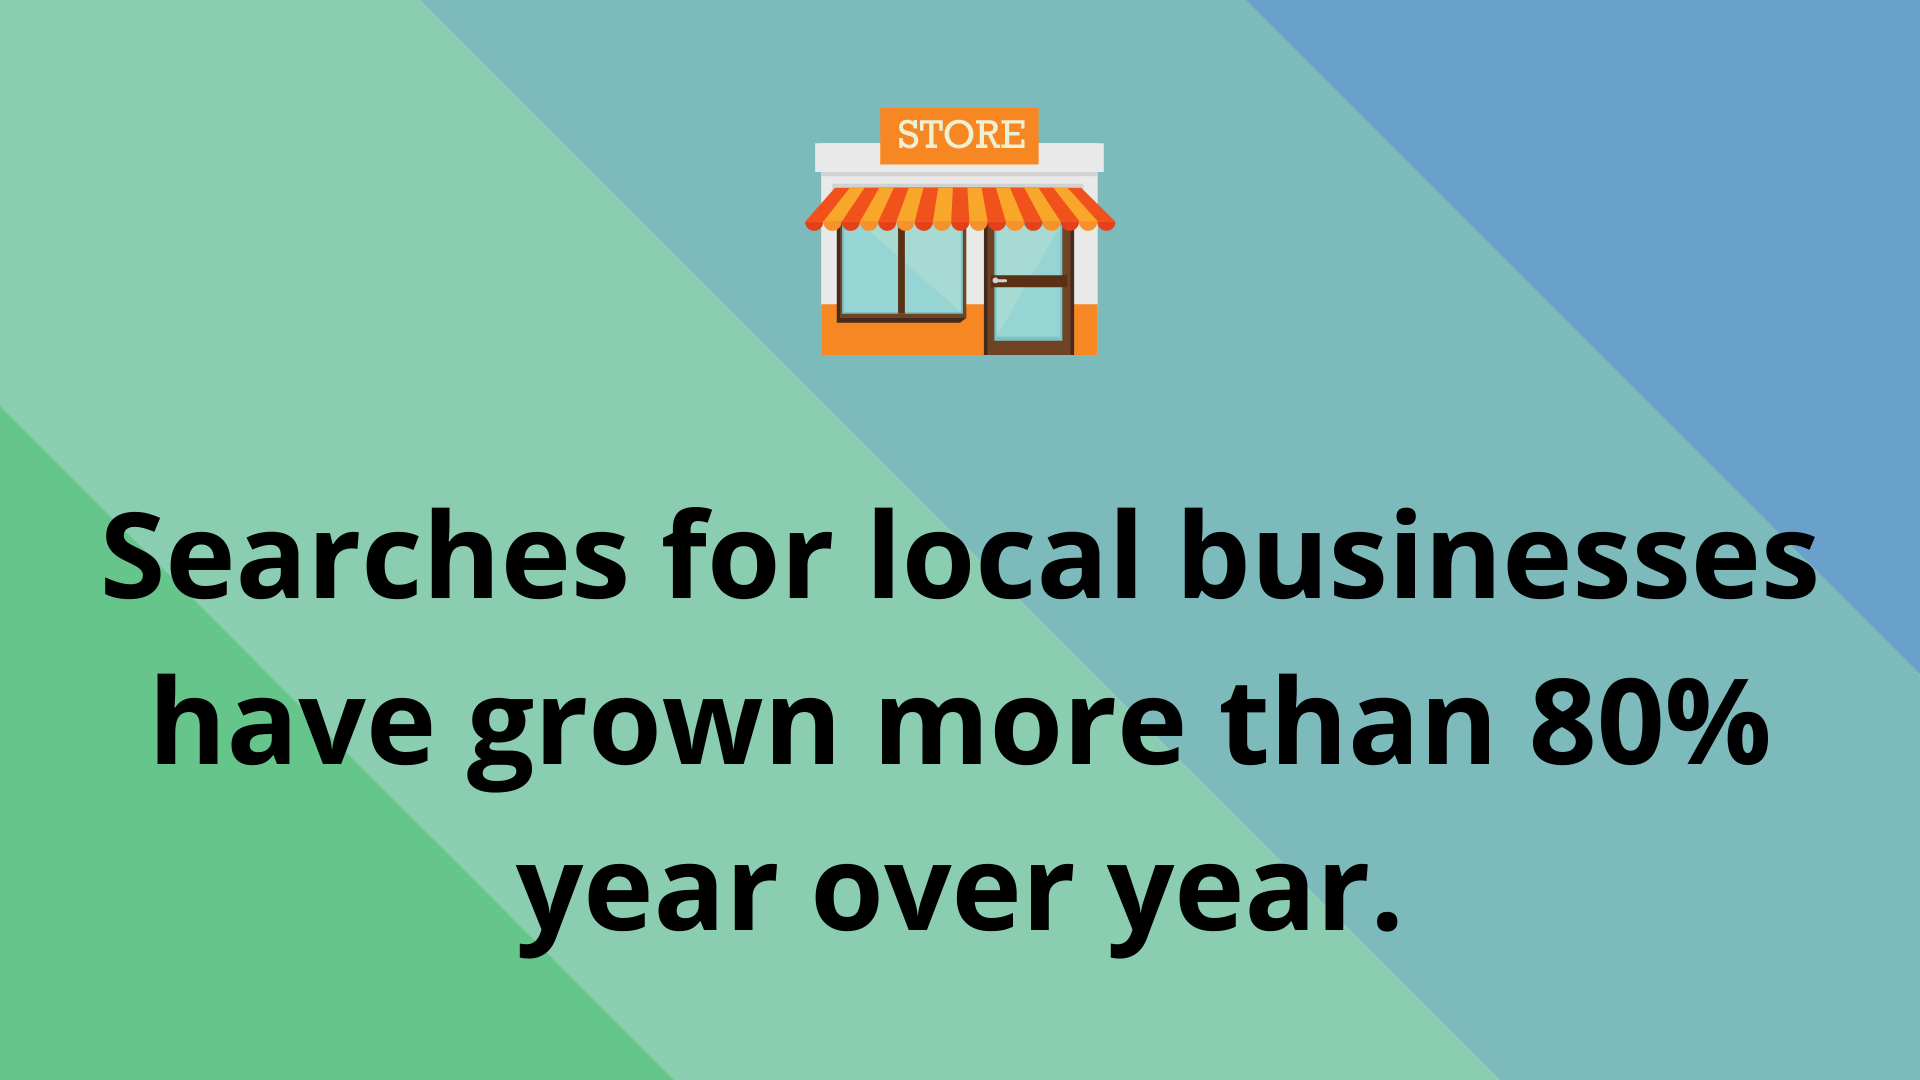 searches for local businesses have increased